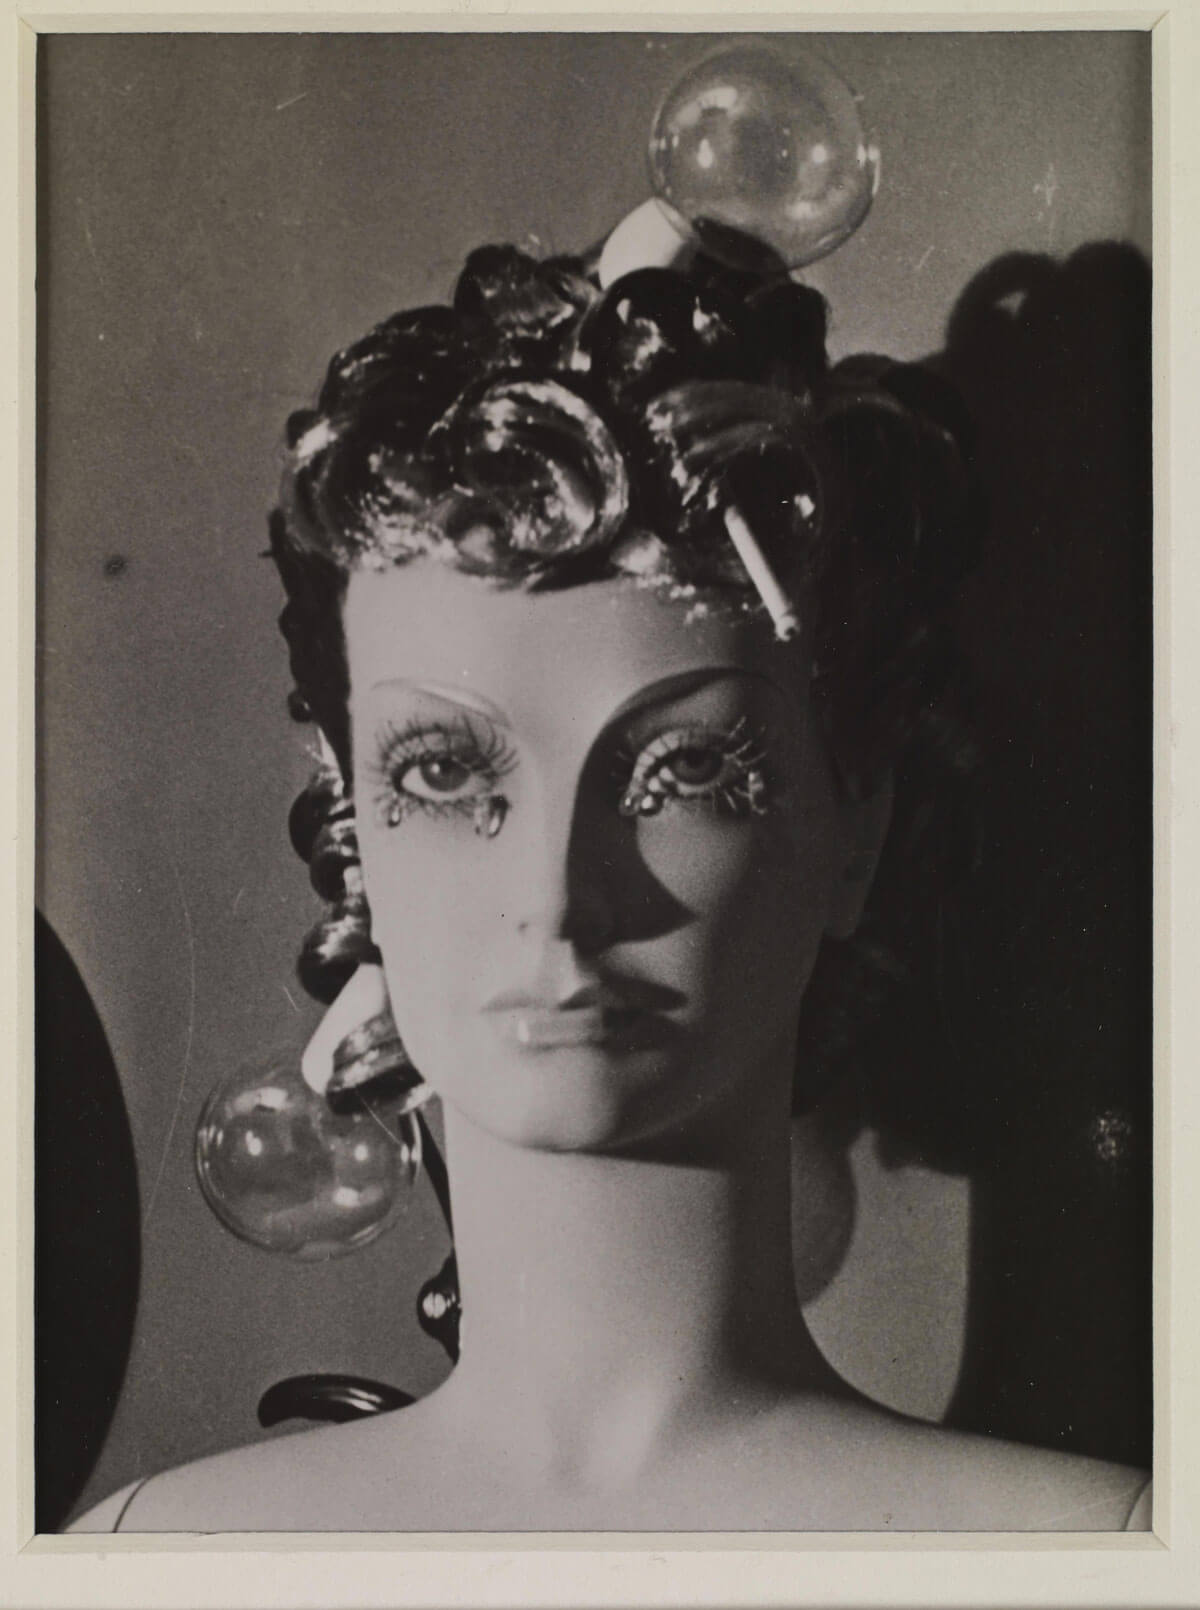 Maniquí, Man Ray, Madrid